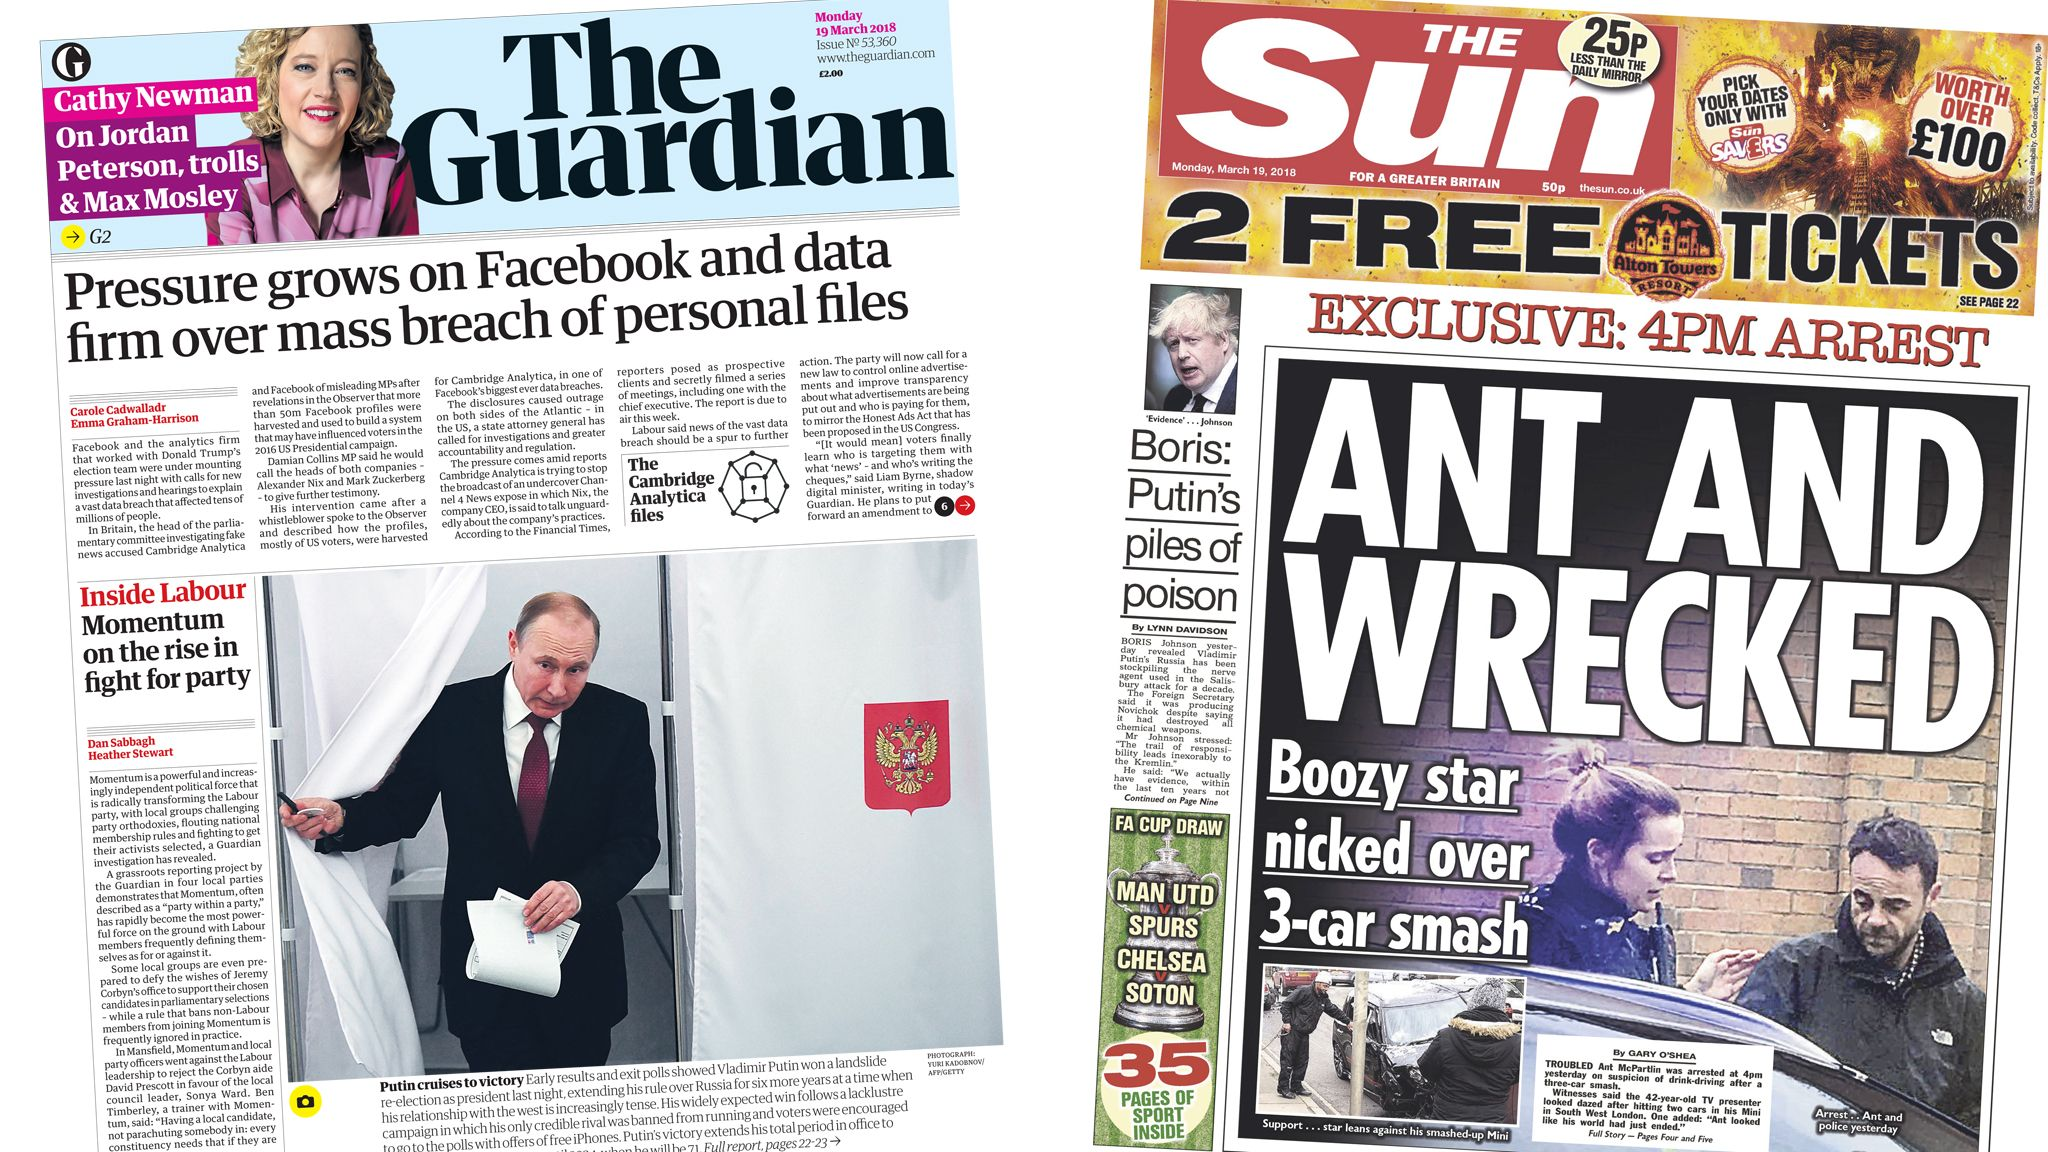 Guardian and Sun front pages for 19/03/18